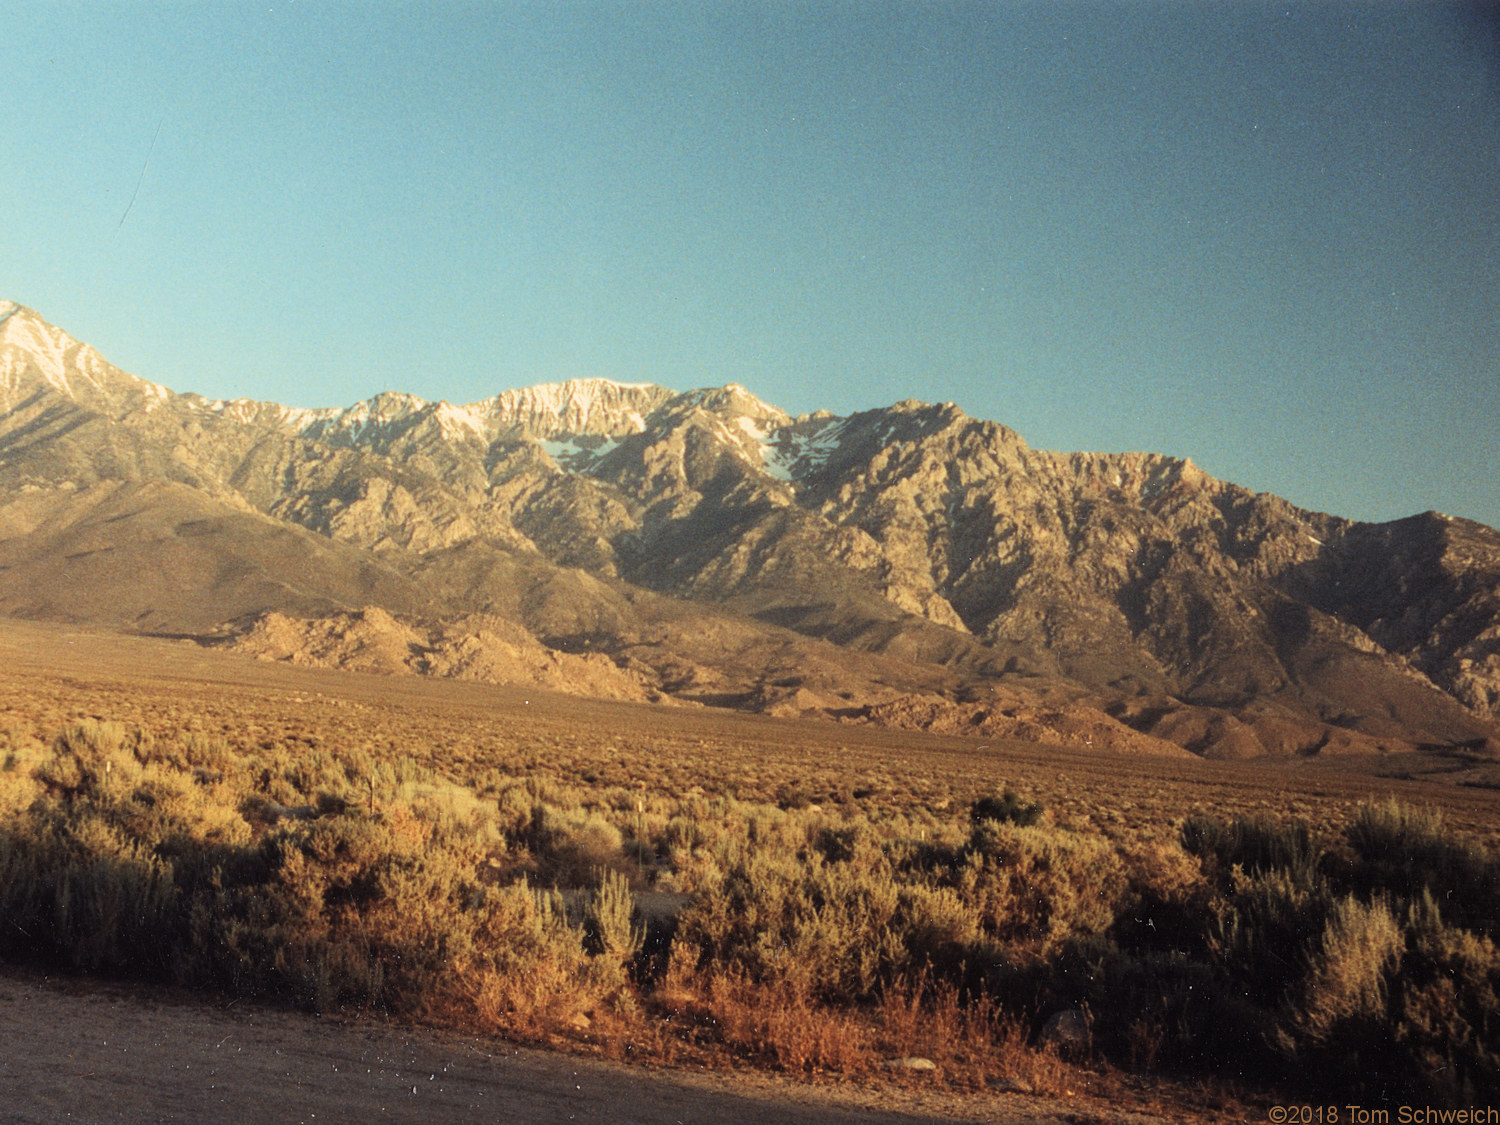 California, Inyo County, Independence Creek Campground